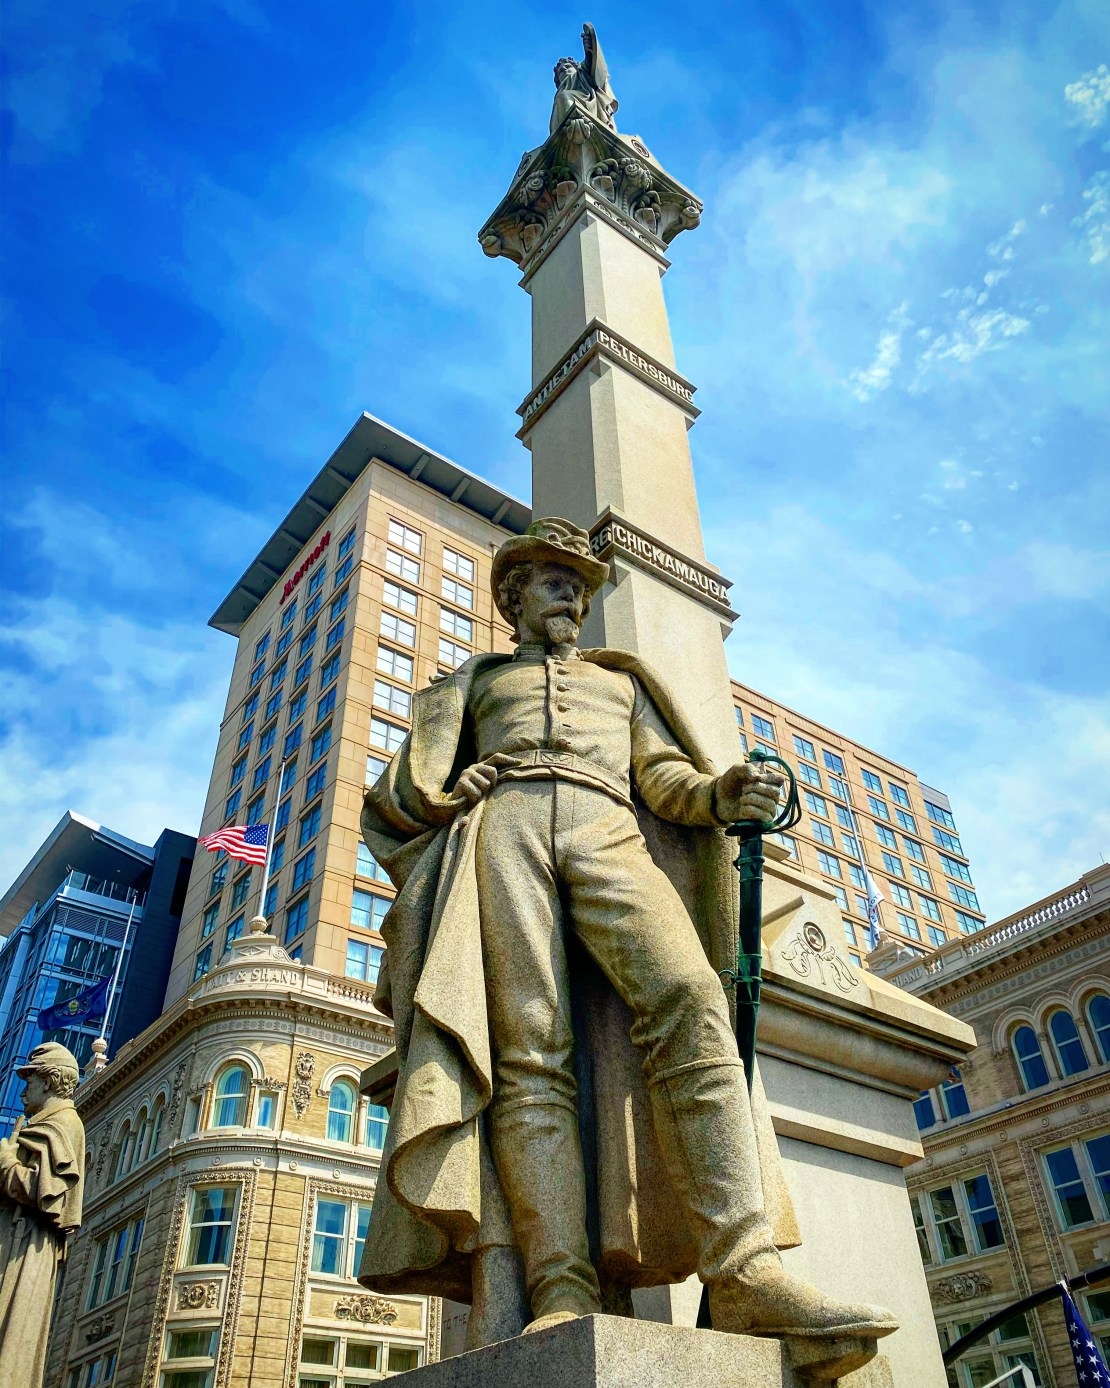 The southwest corner of the monument represents the cavalry.